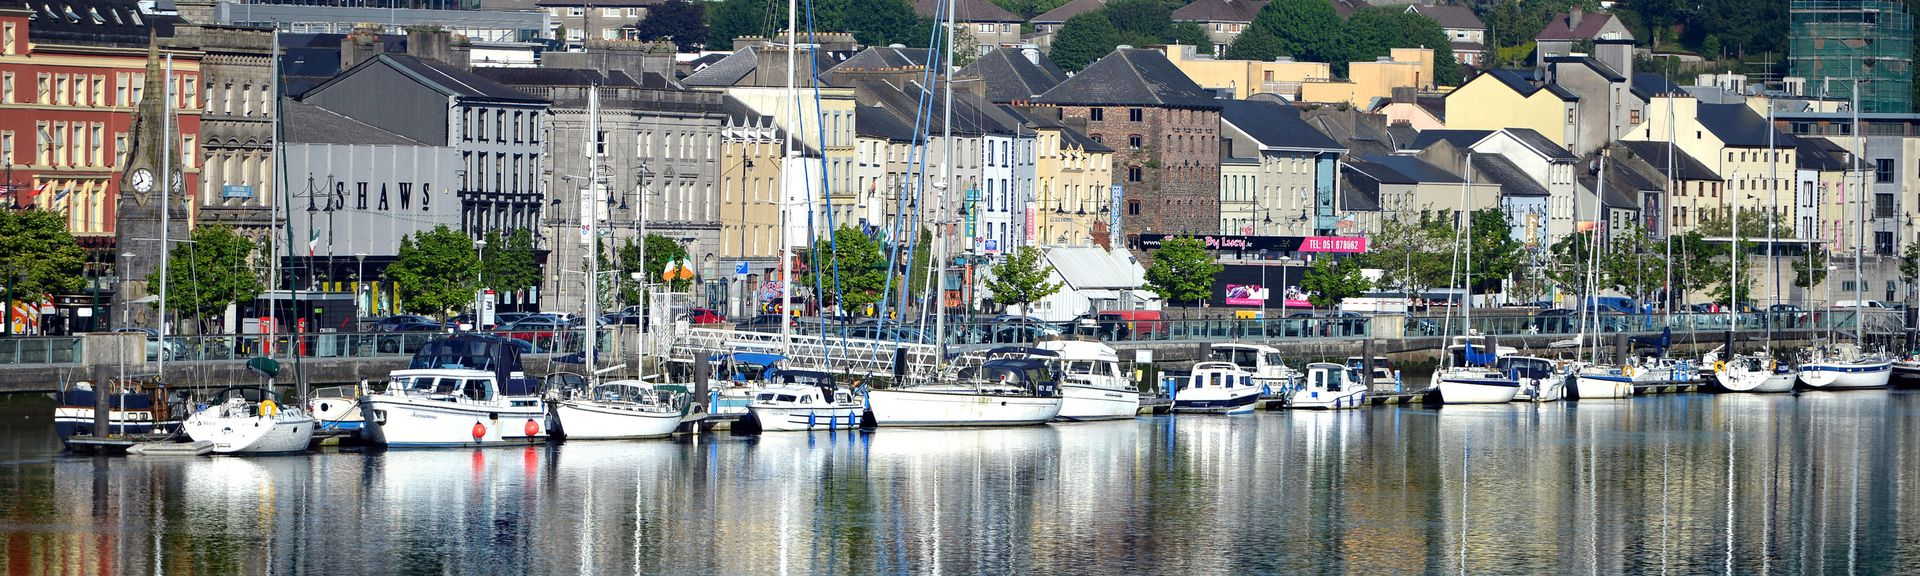 Waterford, Irlande